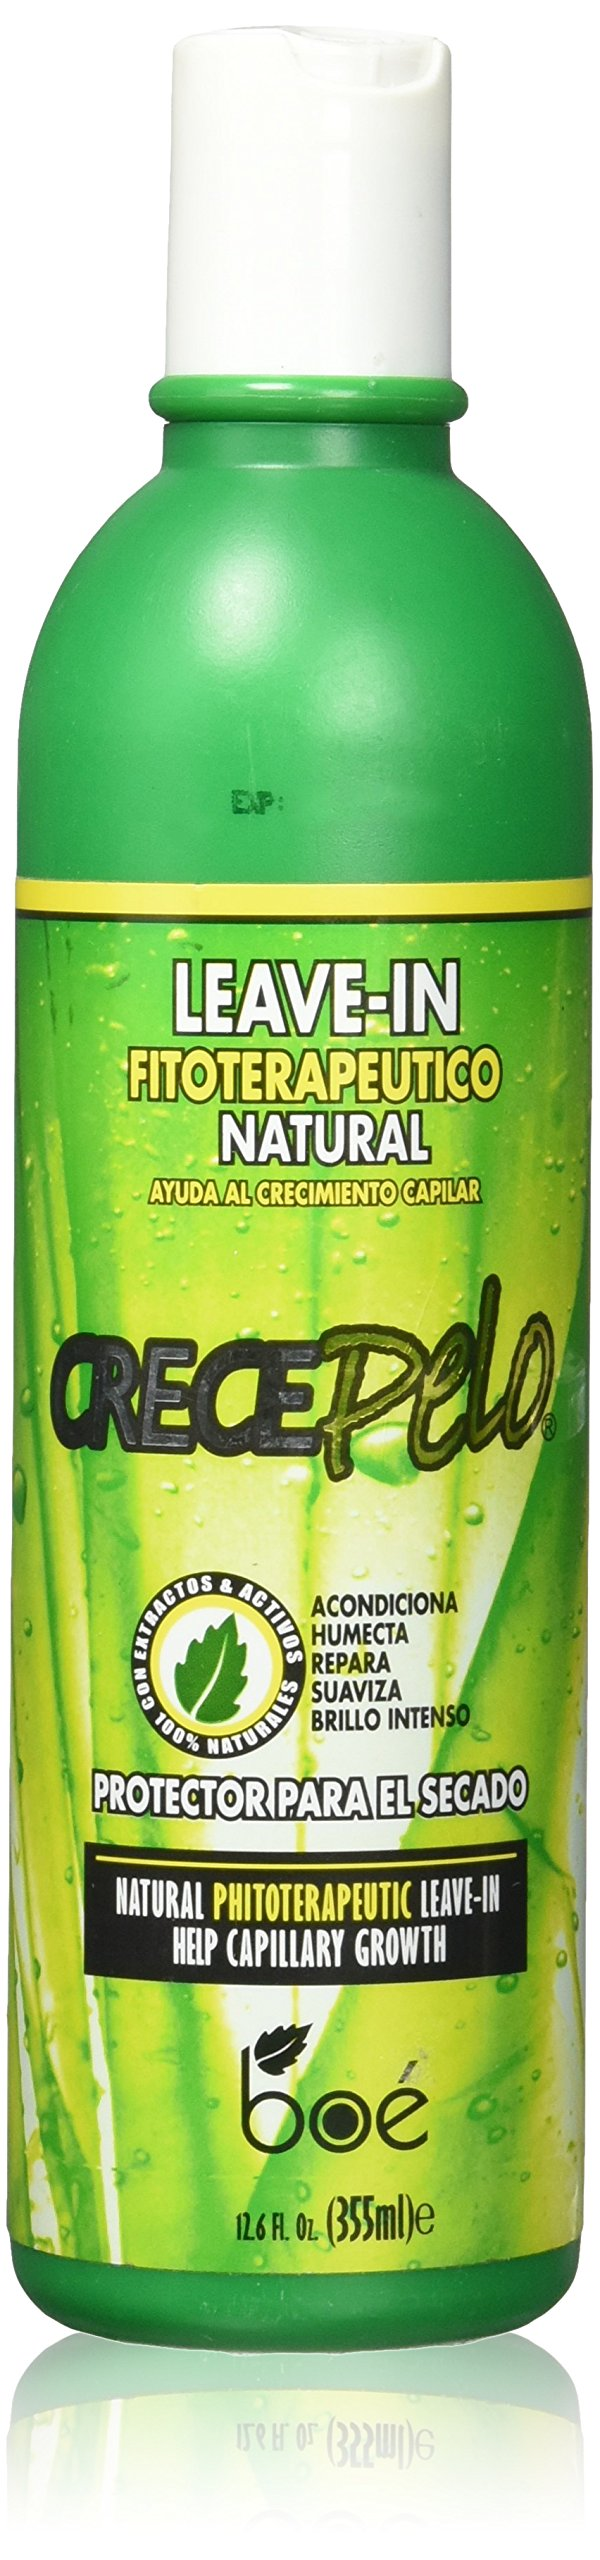 BOE Crece Pelo Natural Leave-In, 12.6 Ounce